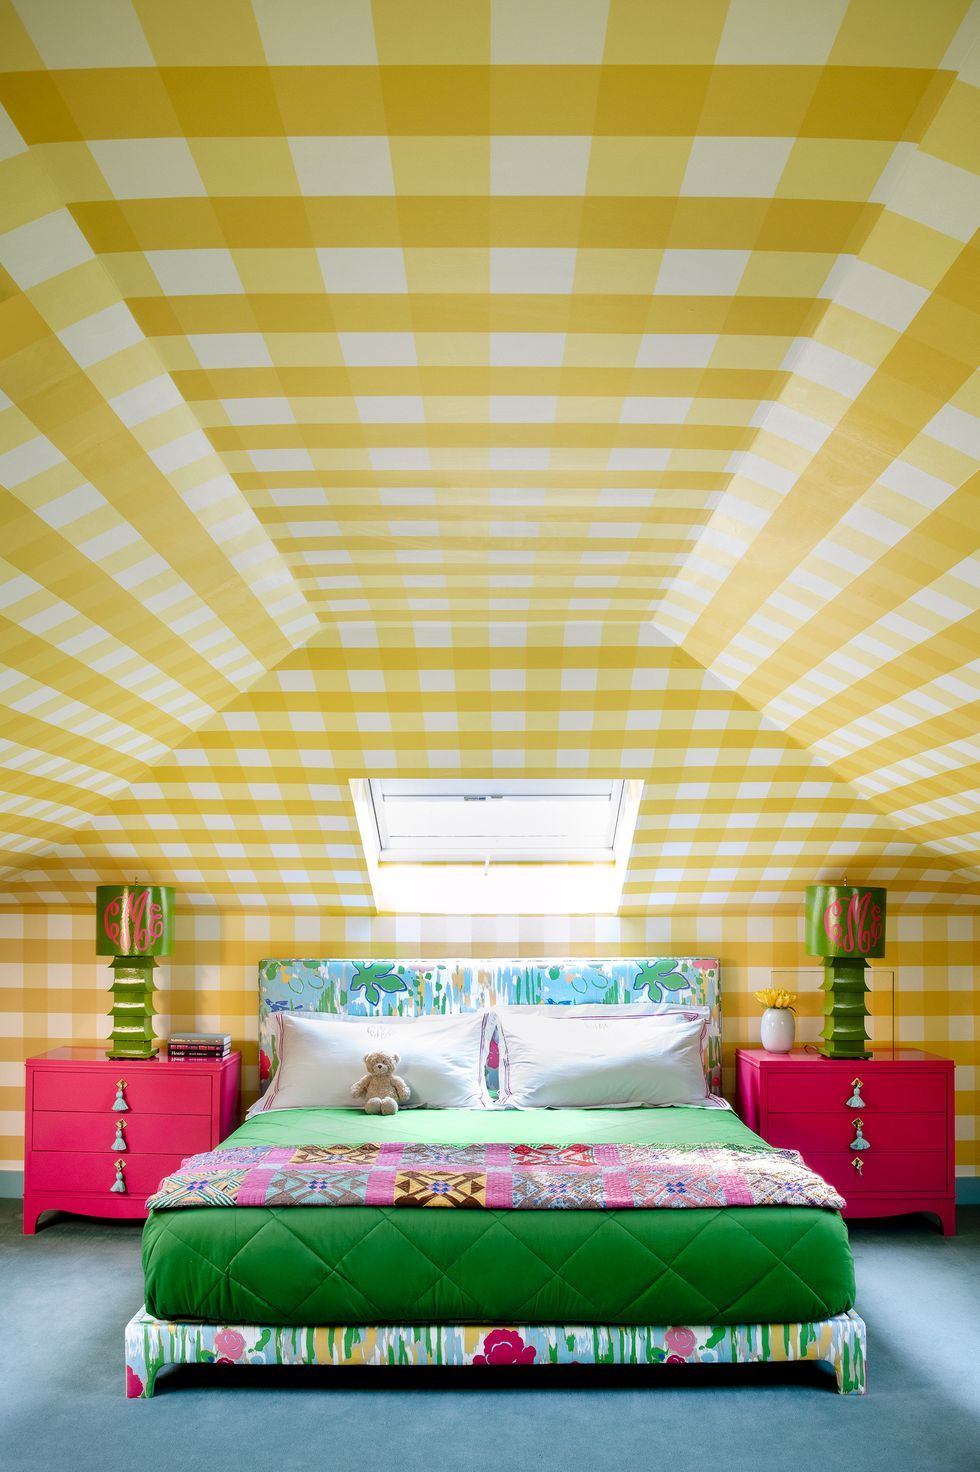 50 Kids Room Design Ideas , Cool Kids Bedroom Decor and Style